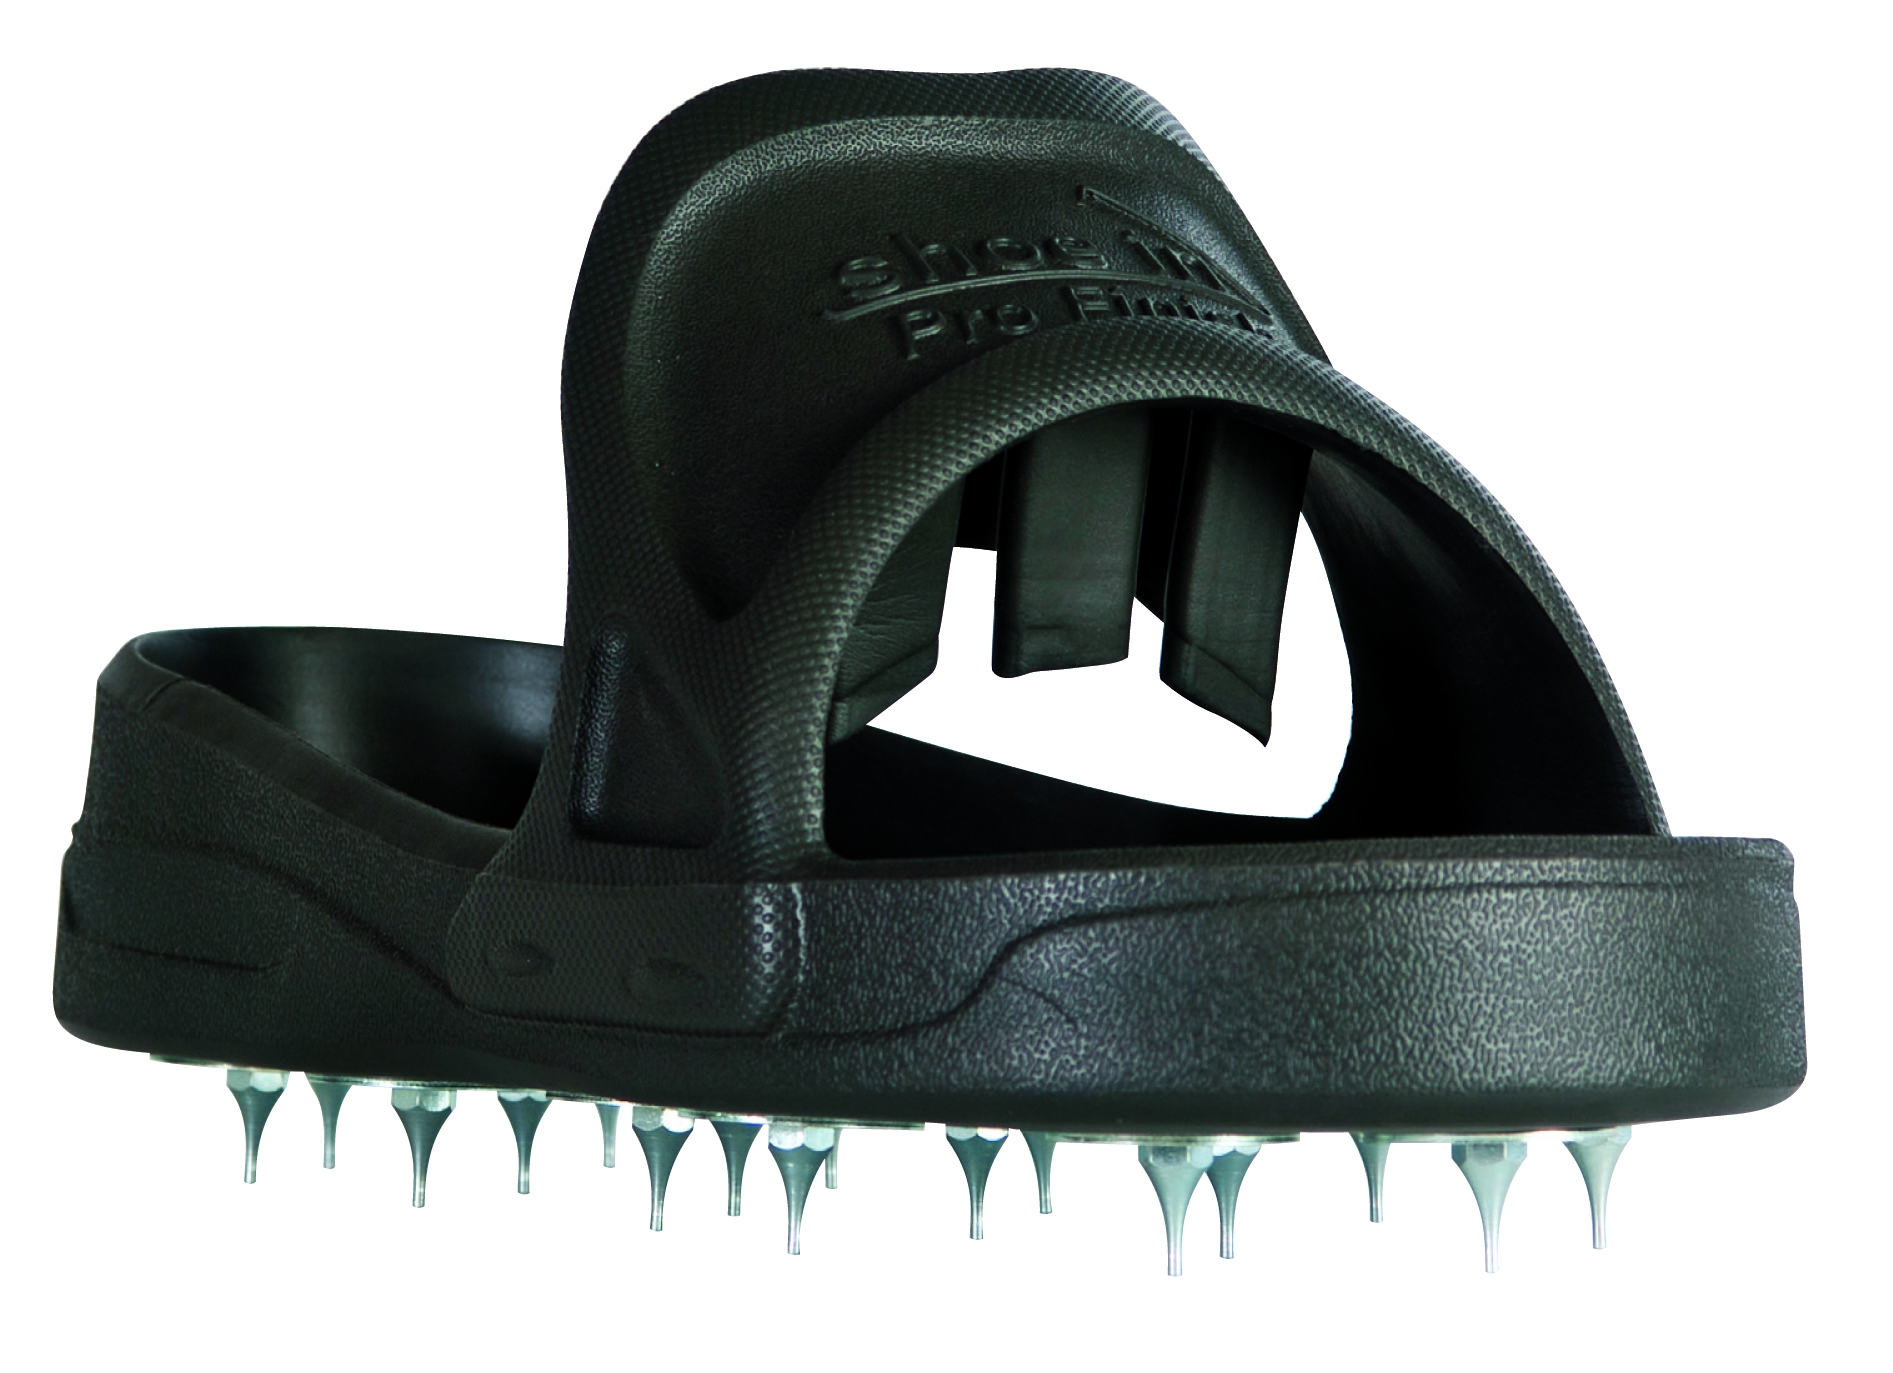 Shoe In Spiked Shoes For Resinous Coatings Large 46172